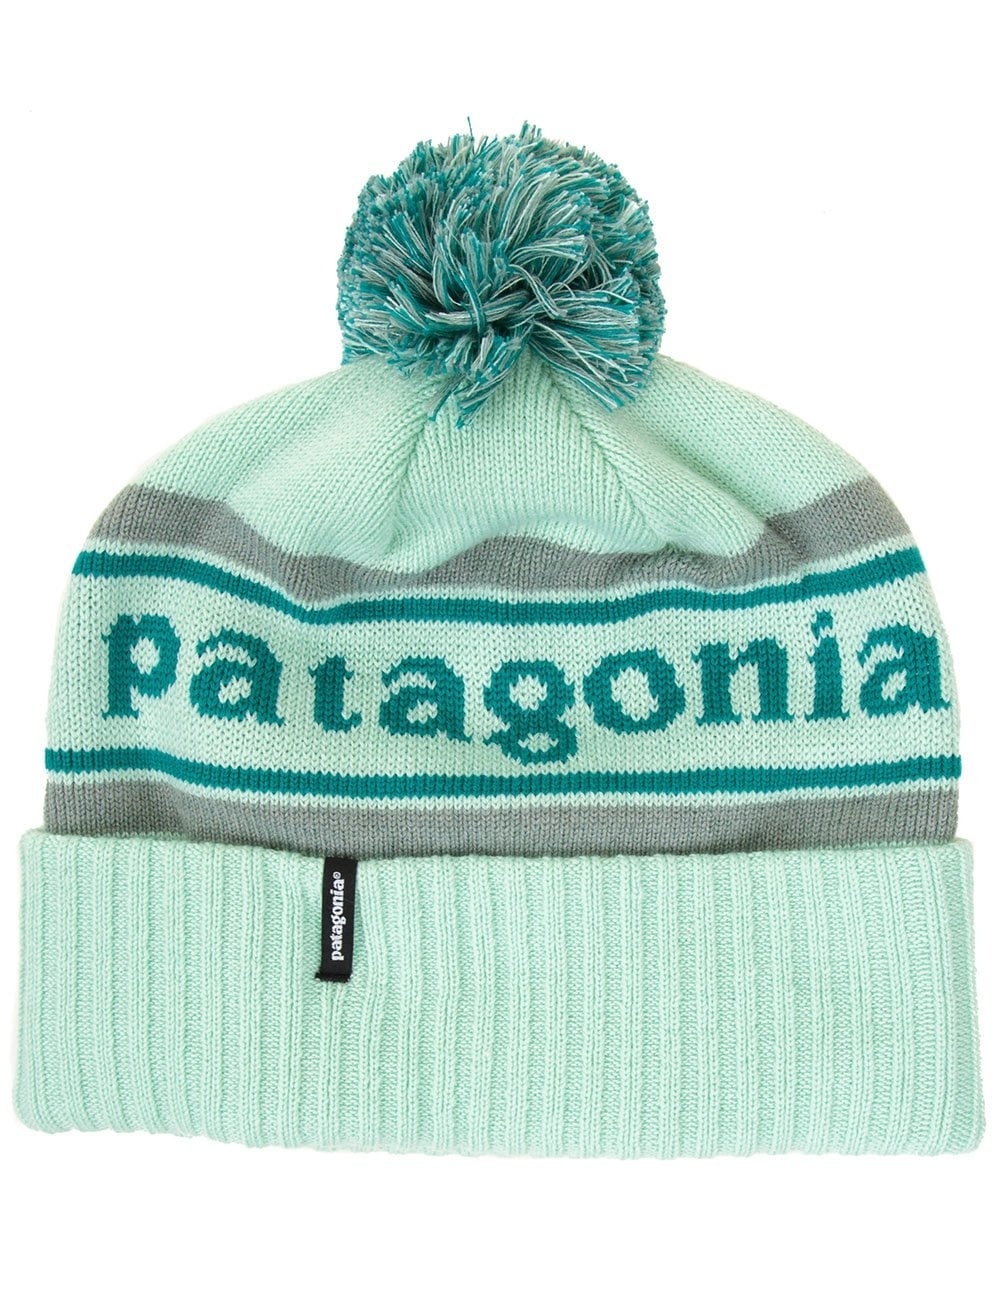 cb35ae78828 Patagonia Powder Town Beanie - Arctic Mint - Hat Shop from Fat ...